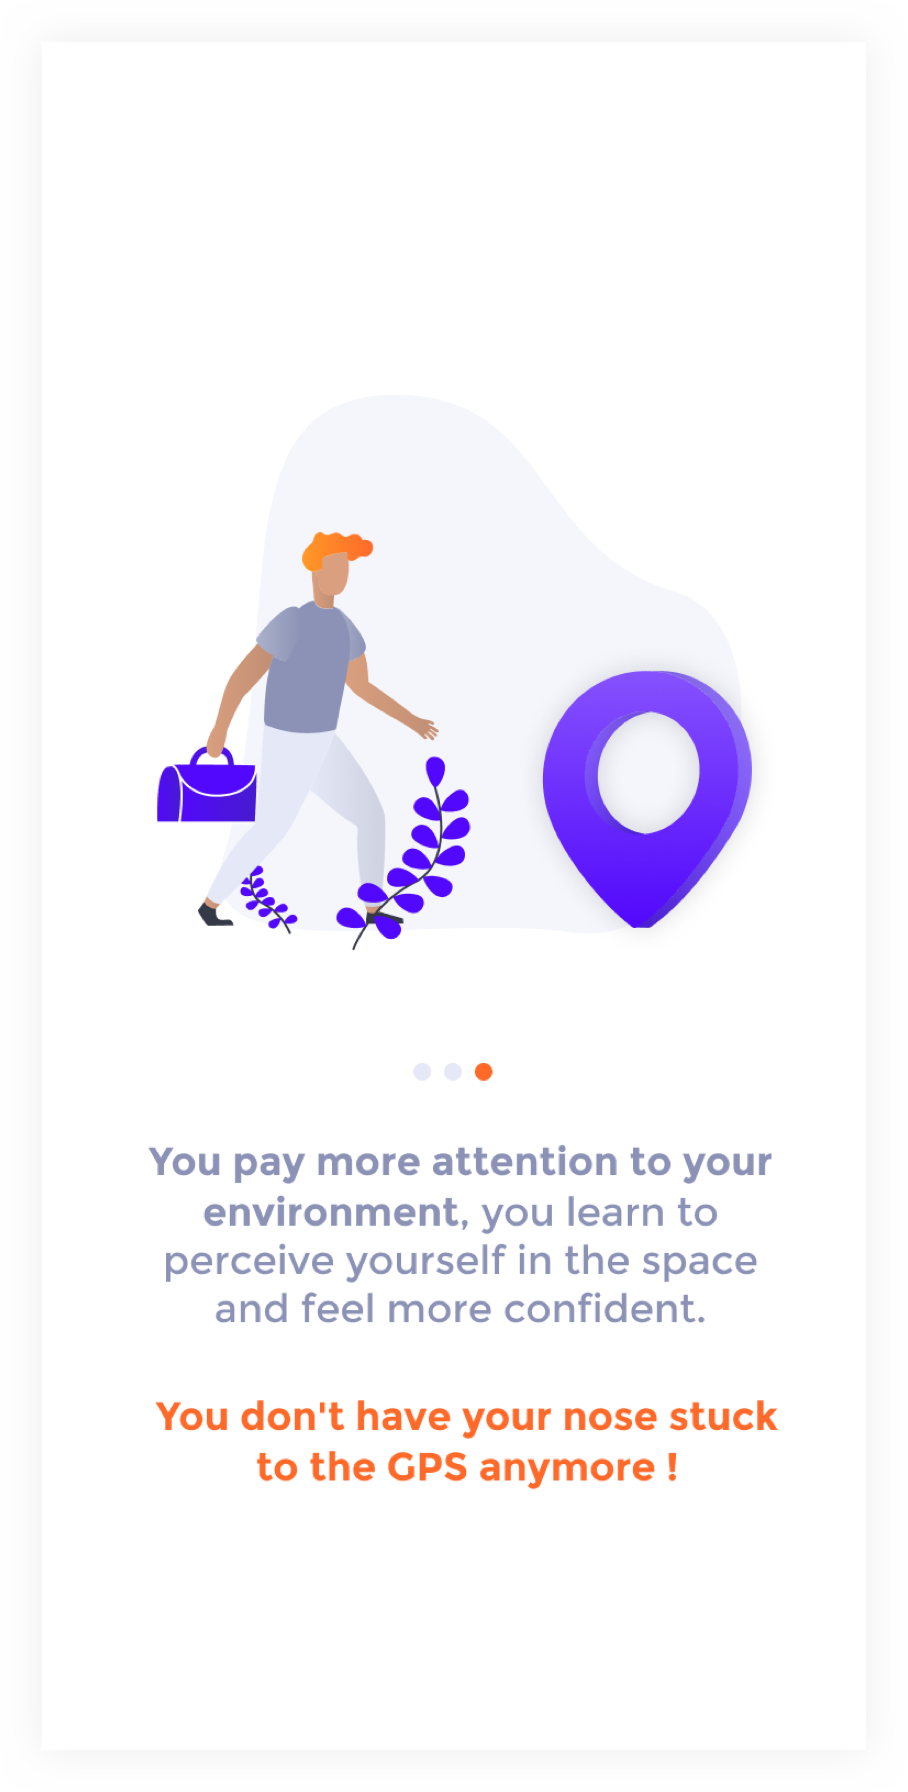 Onboarding screen 1 : illustration of a man that walks towards a point of interest